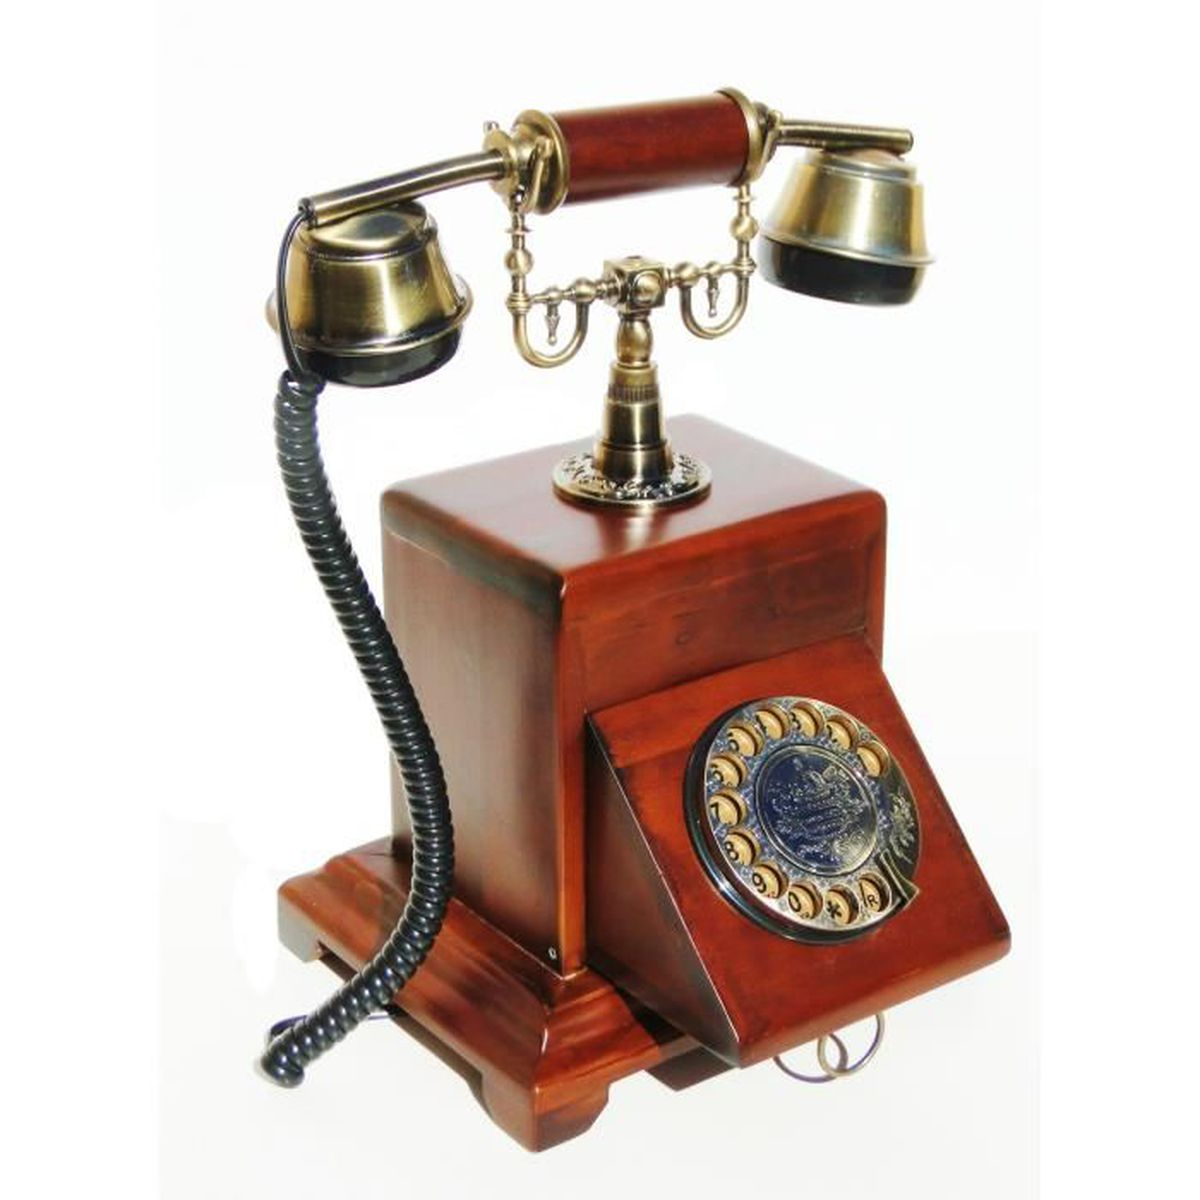 t l phone fixe antique 1930 en bois vintage style r tro fonctionnel clavier a touche retractable. Black Bedroom Furniture Sets. Home Design Ideas